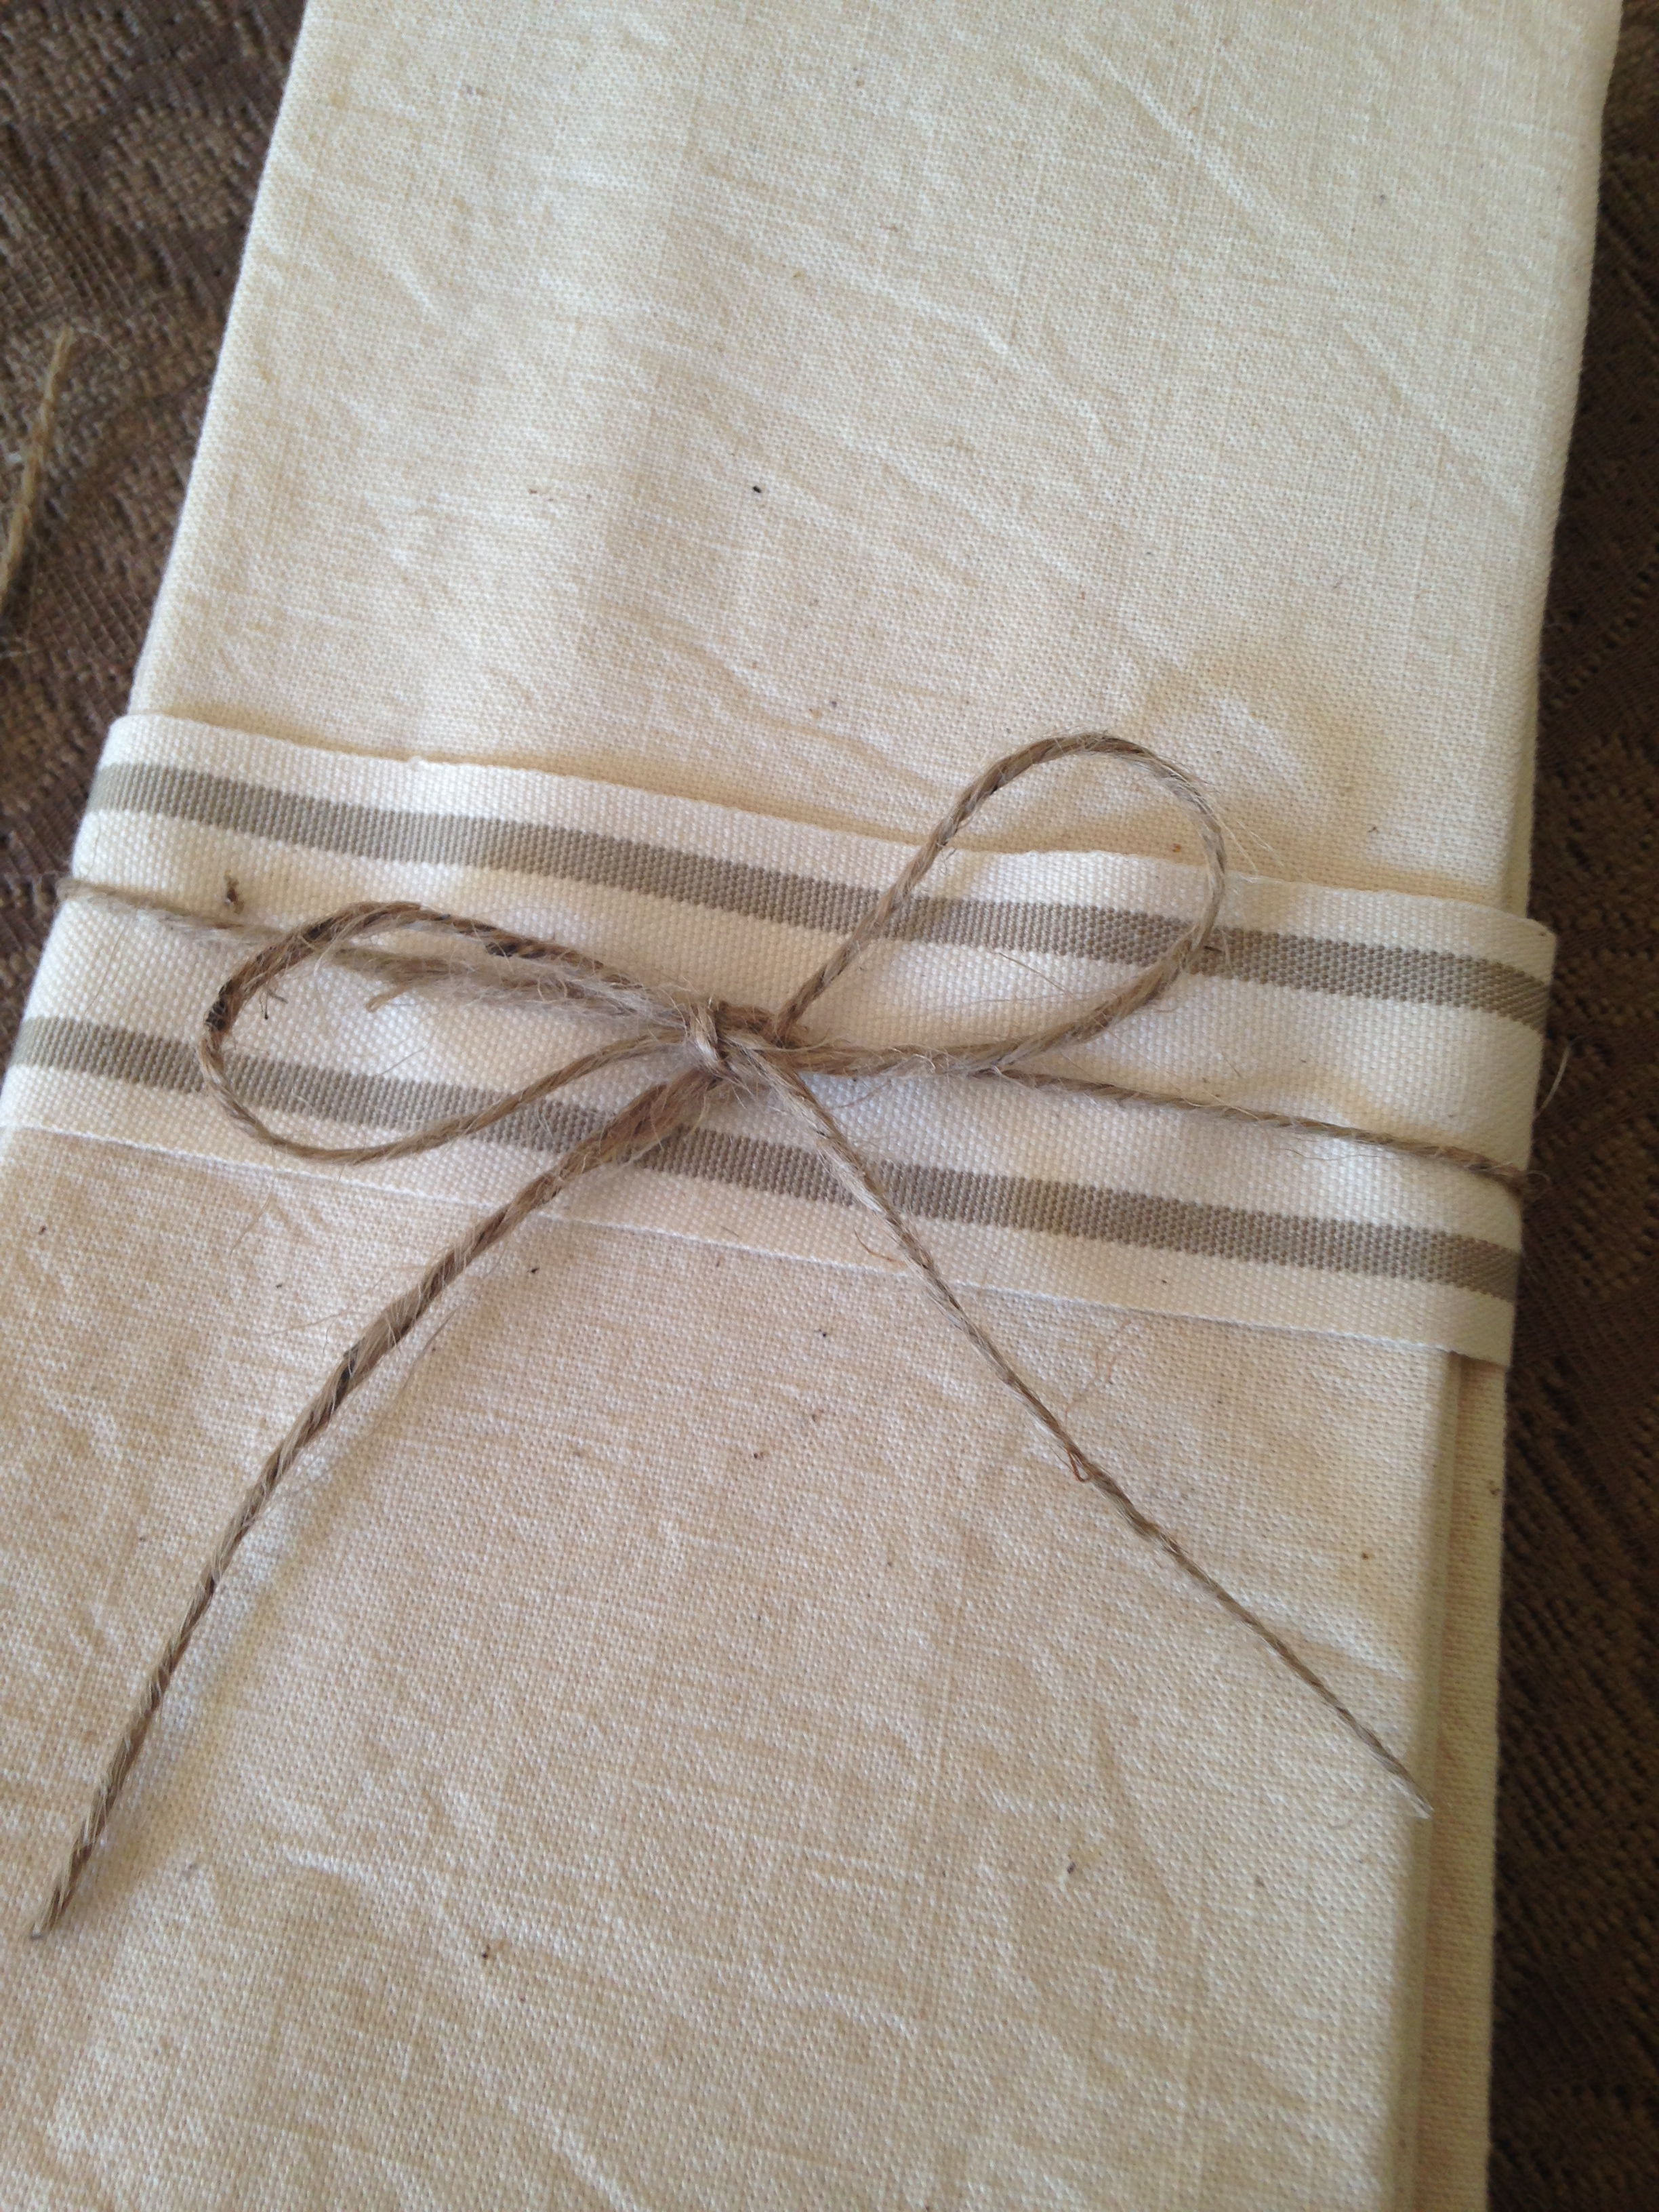 French Vintage Linen Napkin Set